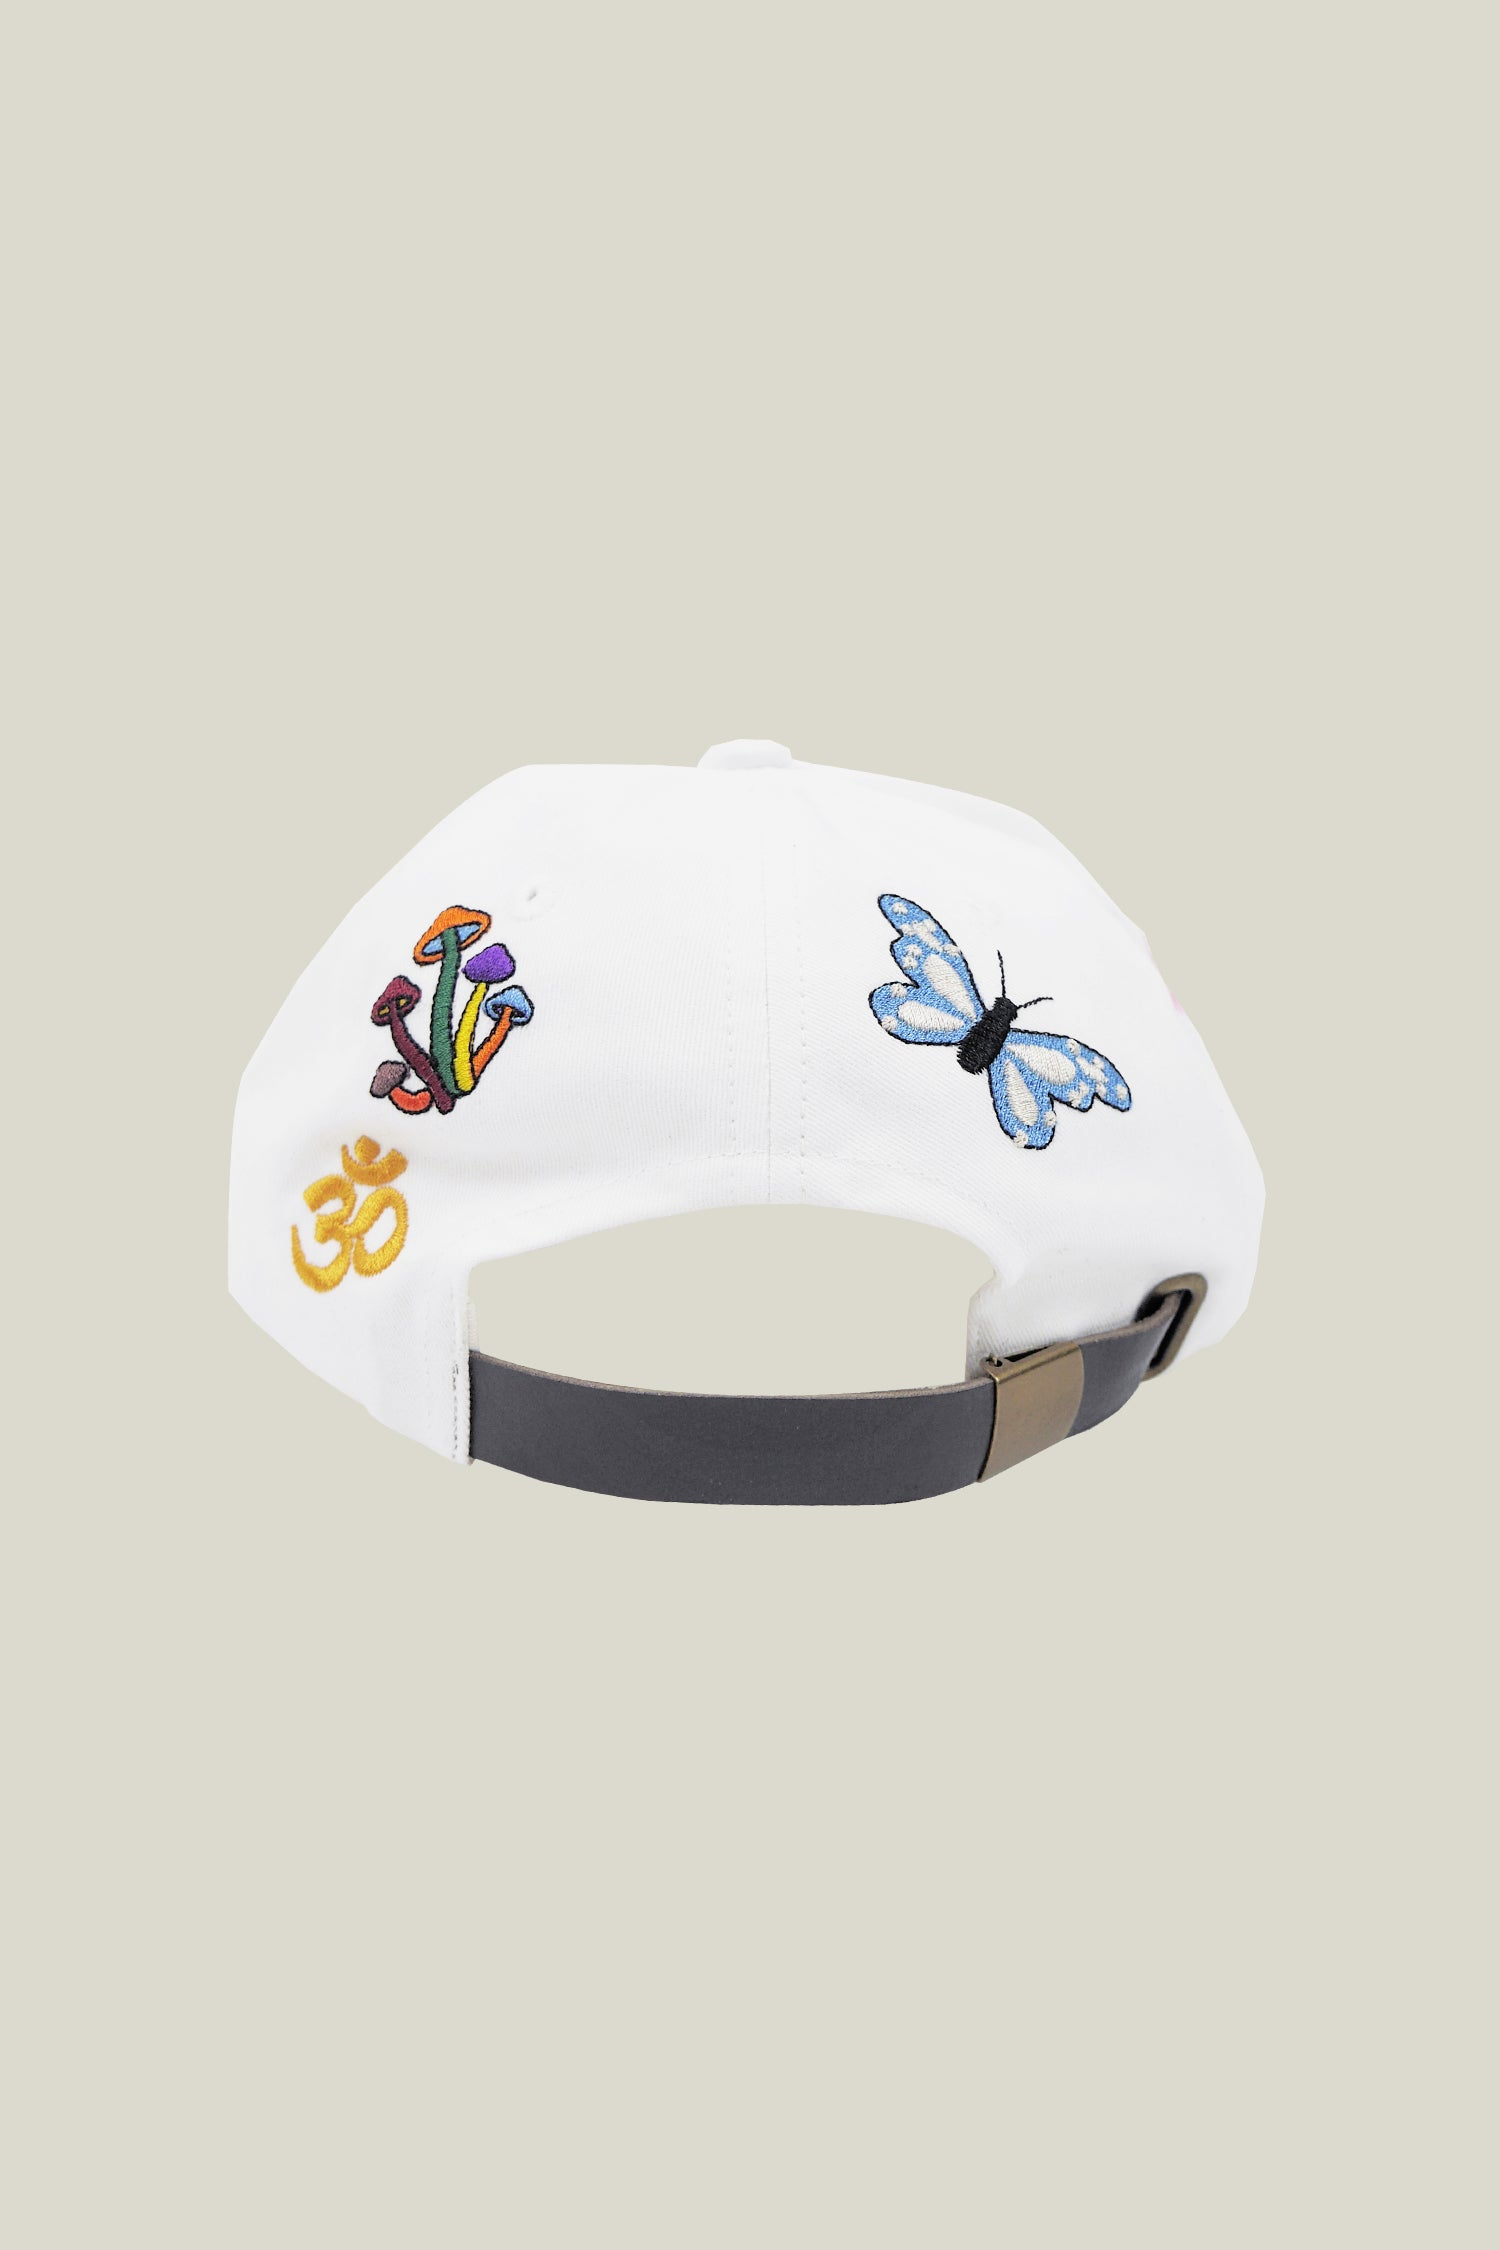 Embroidered white cap, made with cotton twill in Portugal.